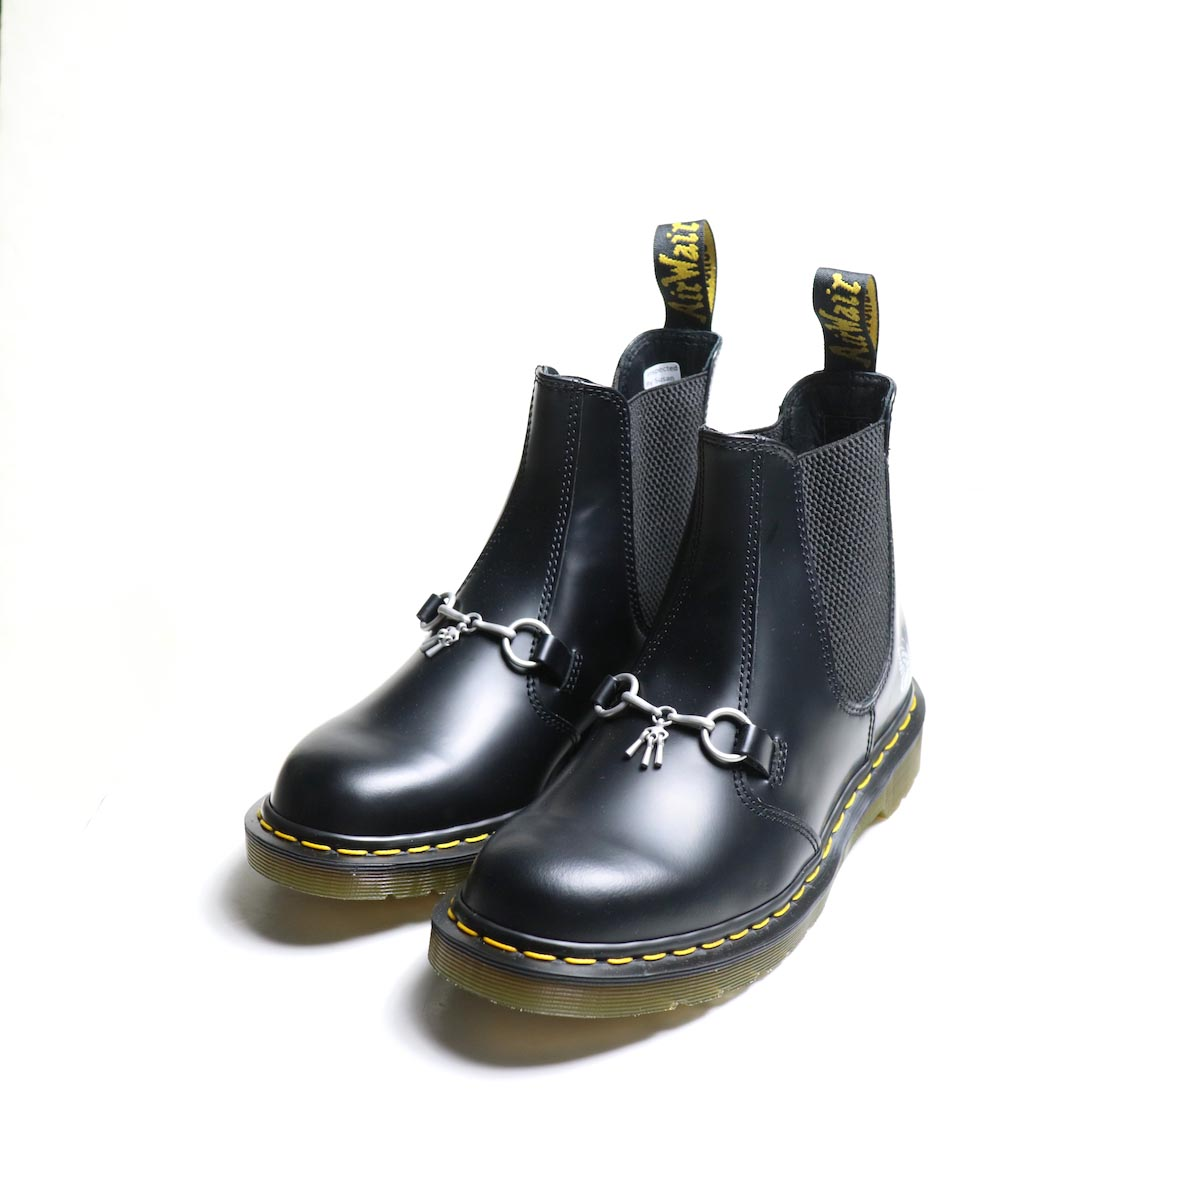 NEEDLES x DR. MARTENS / CHELSEAS BOOT With BIT